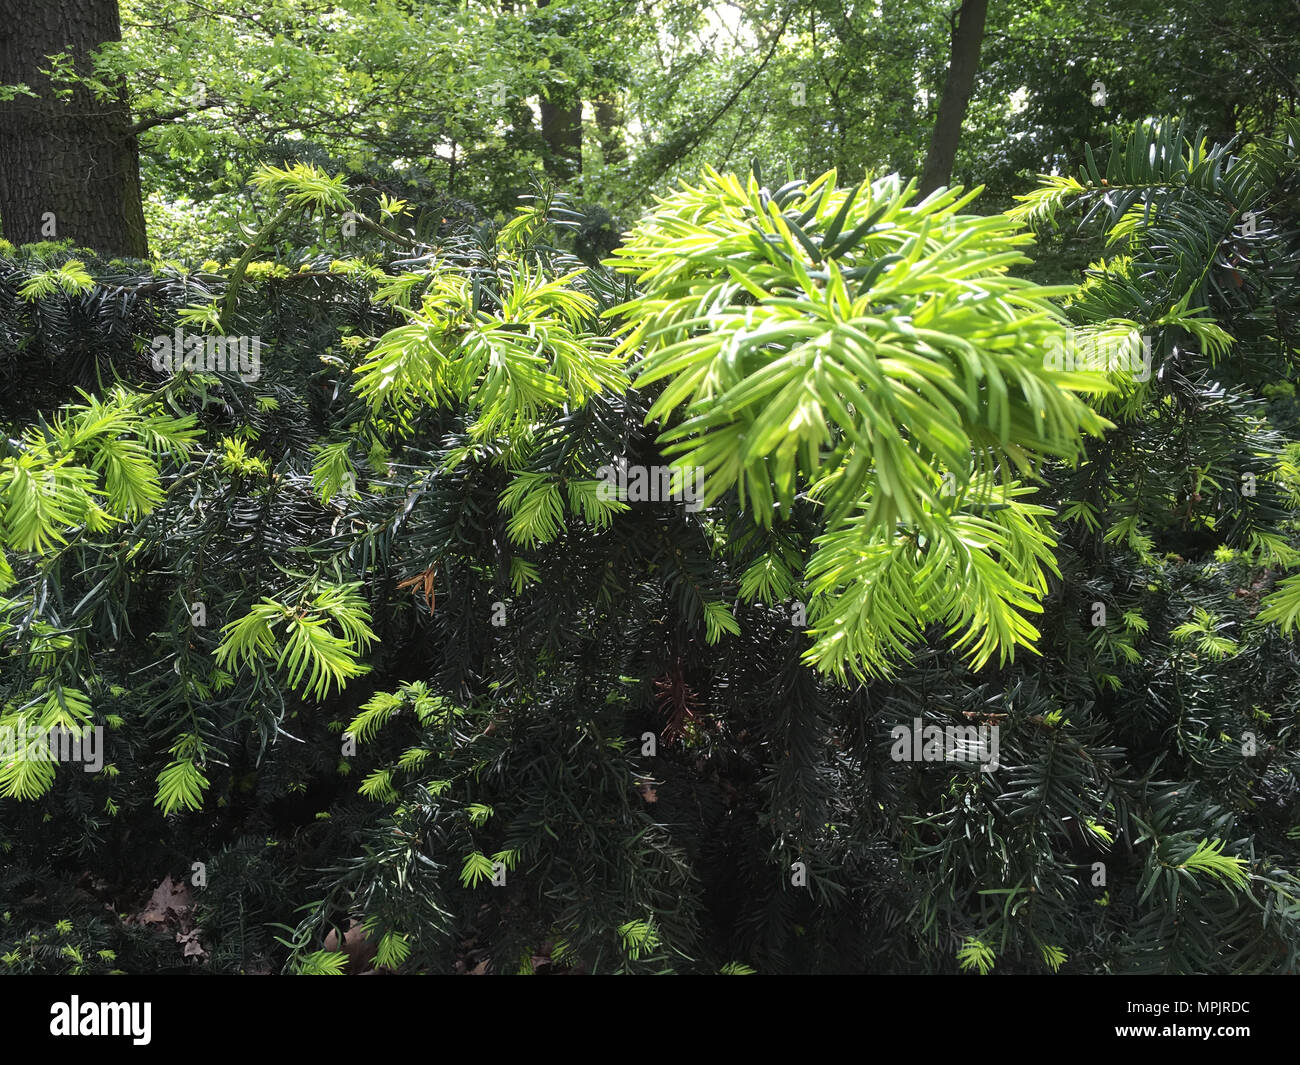 young branch of fir tree, close up detail picture - Stock Image